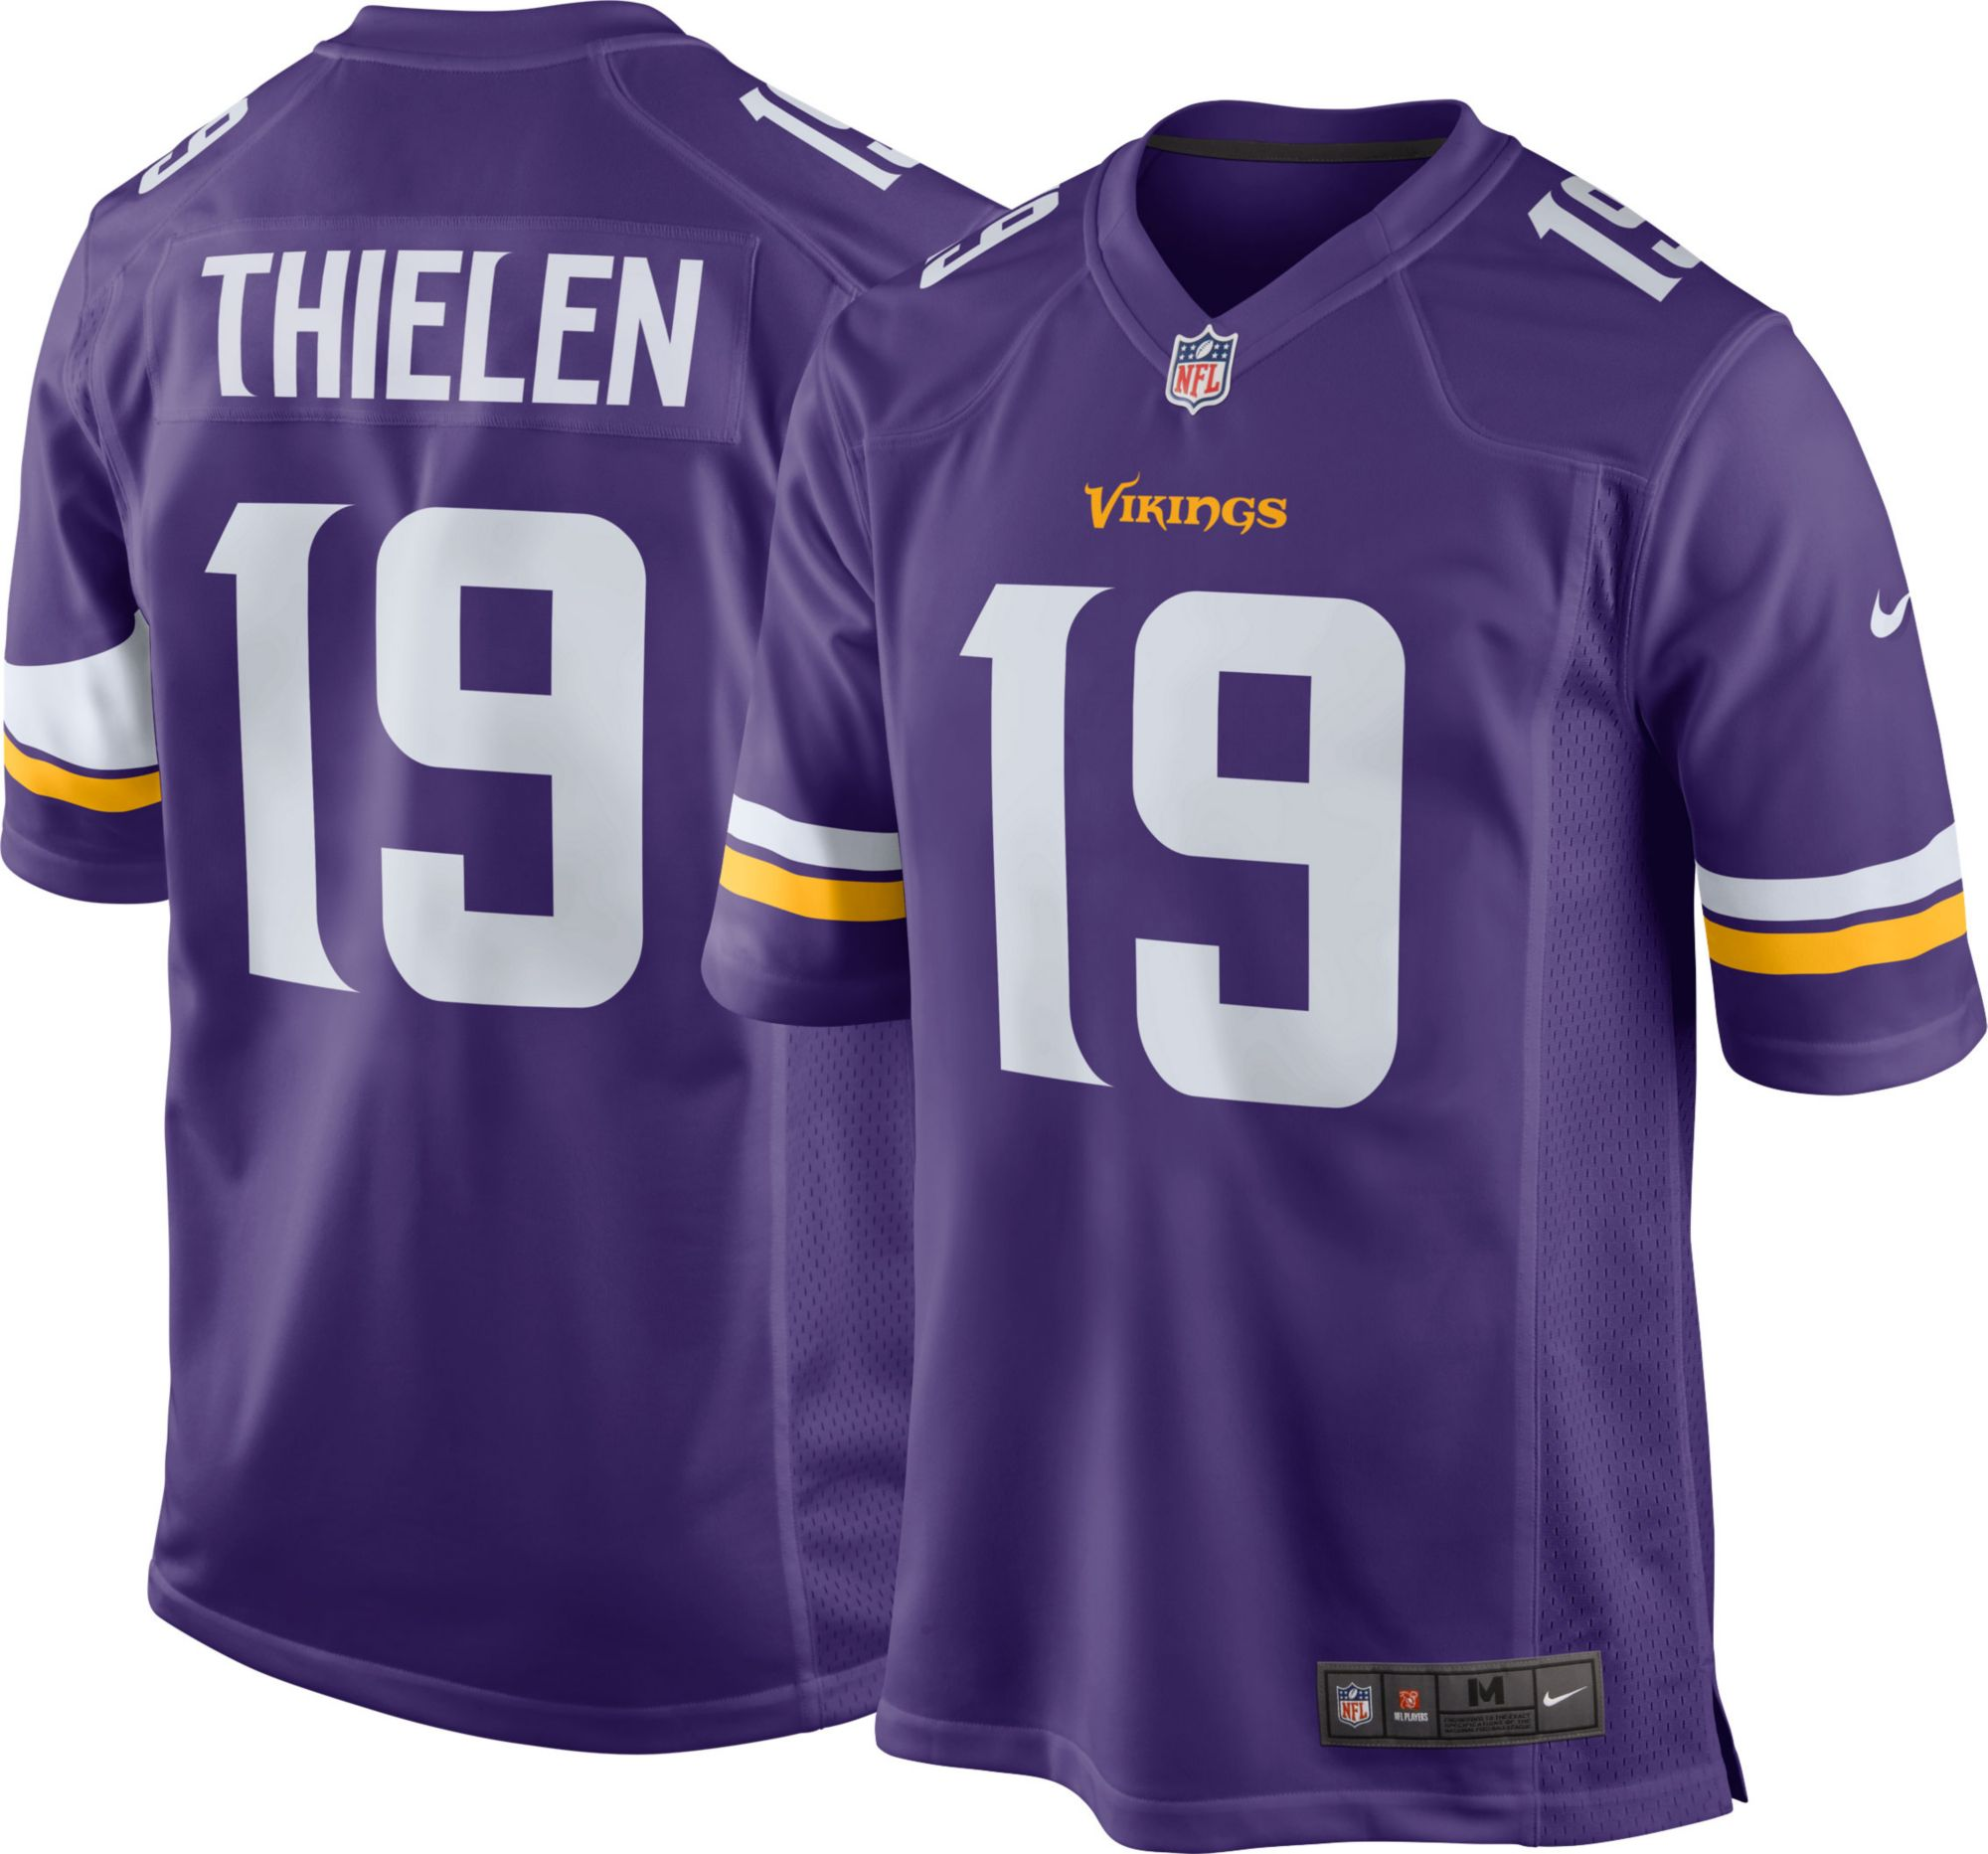 san francisco e1850 fd877 Details about Minnesota Vikings Home Jerseys #8 Kirk Cousins #14 Diggs #19  Thielen